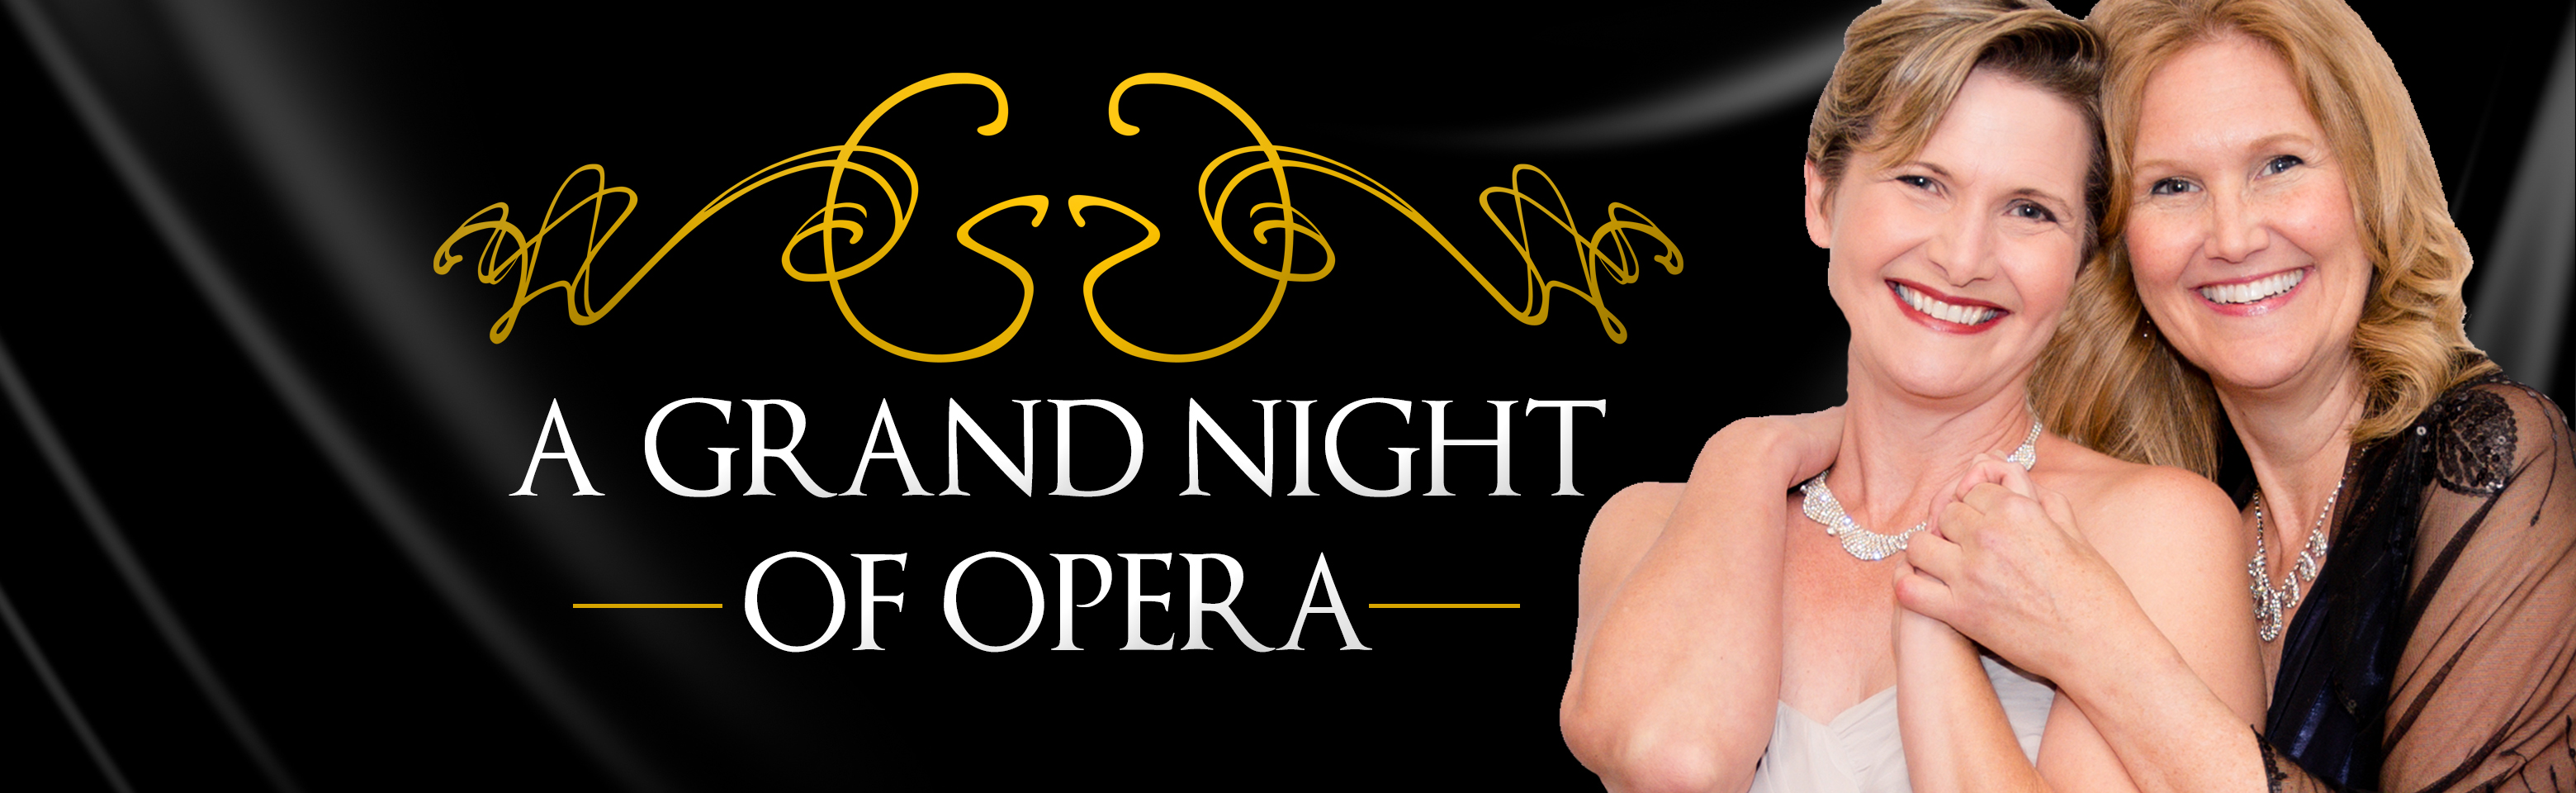 'A Grand Night of Opera' in Indialantic sponsored by Space Coast Symphony Orchestra